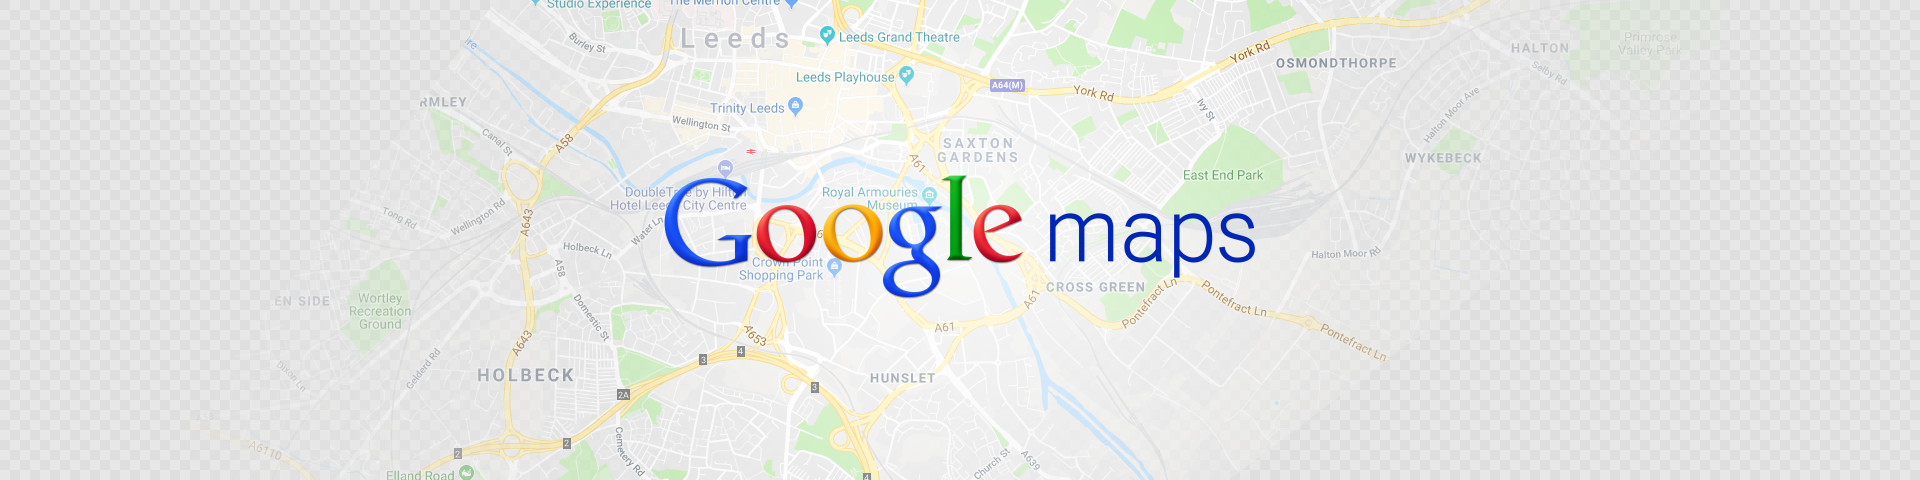 Map Of England Google Maps.Get Google Maps On Your Website Qweb Ltd Award Winning Web And